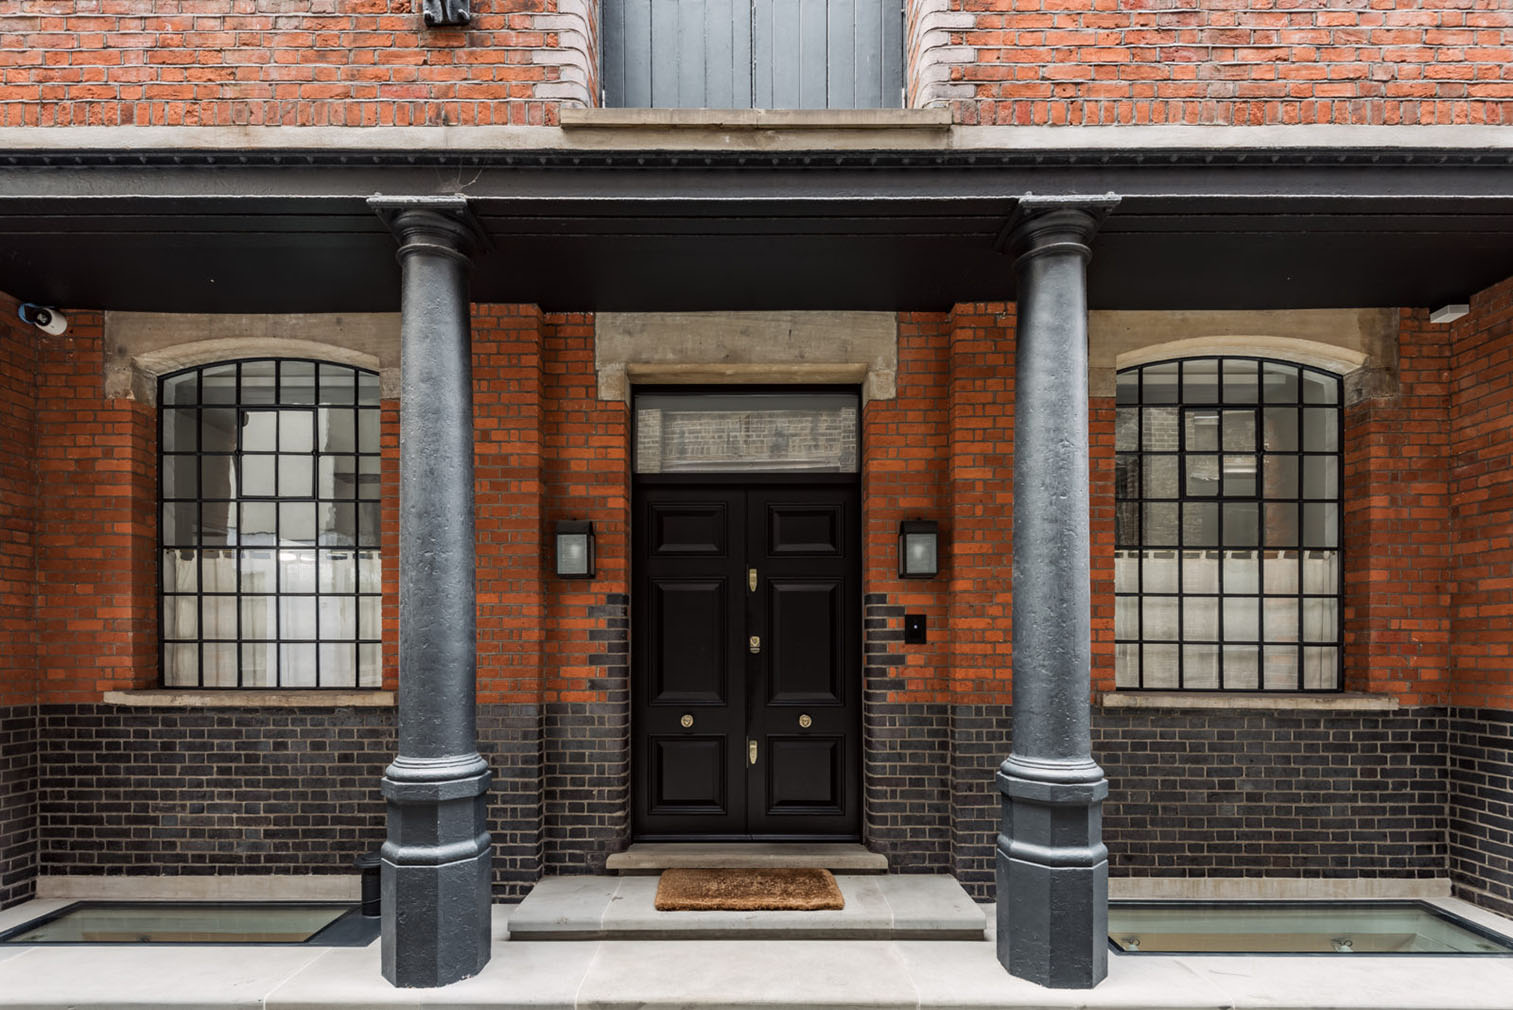 The cooperage scooped a 2017 RIBA award for its masterful blending of old and new, and now the Clerkenwell property is on the market via The Modern House for £7.25m.